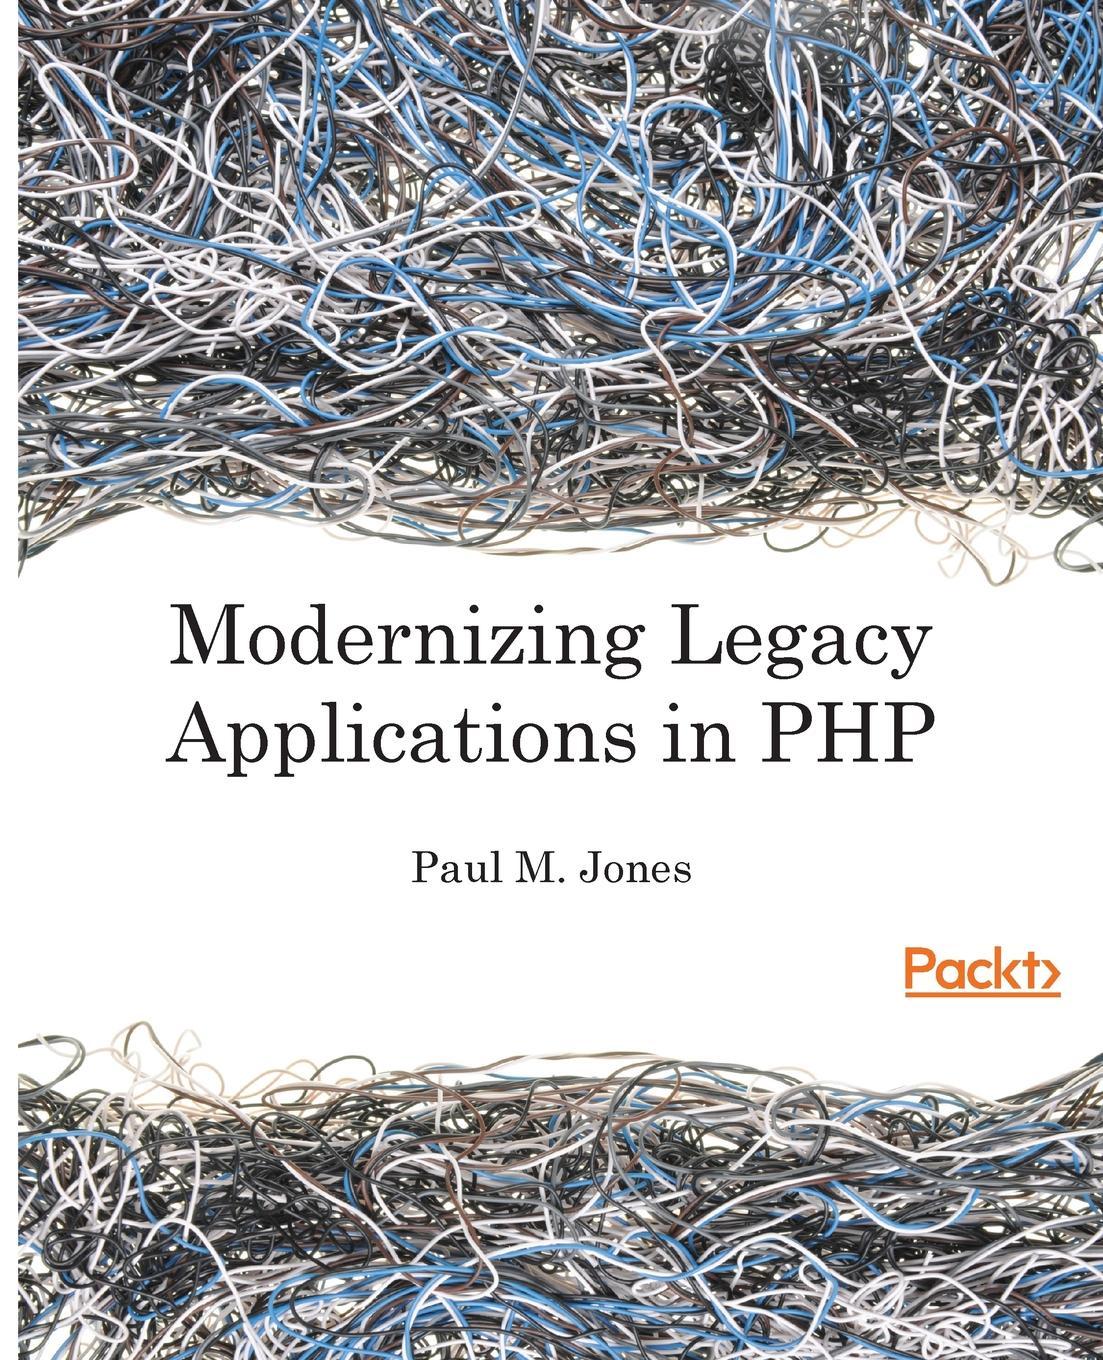 Paul M. Jones Modernizing Legacy Applications In PHP sebastian bergmann real world solutions for developing high quality php frameworks and applications